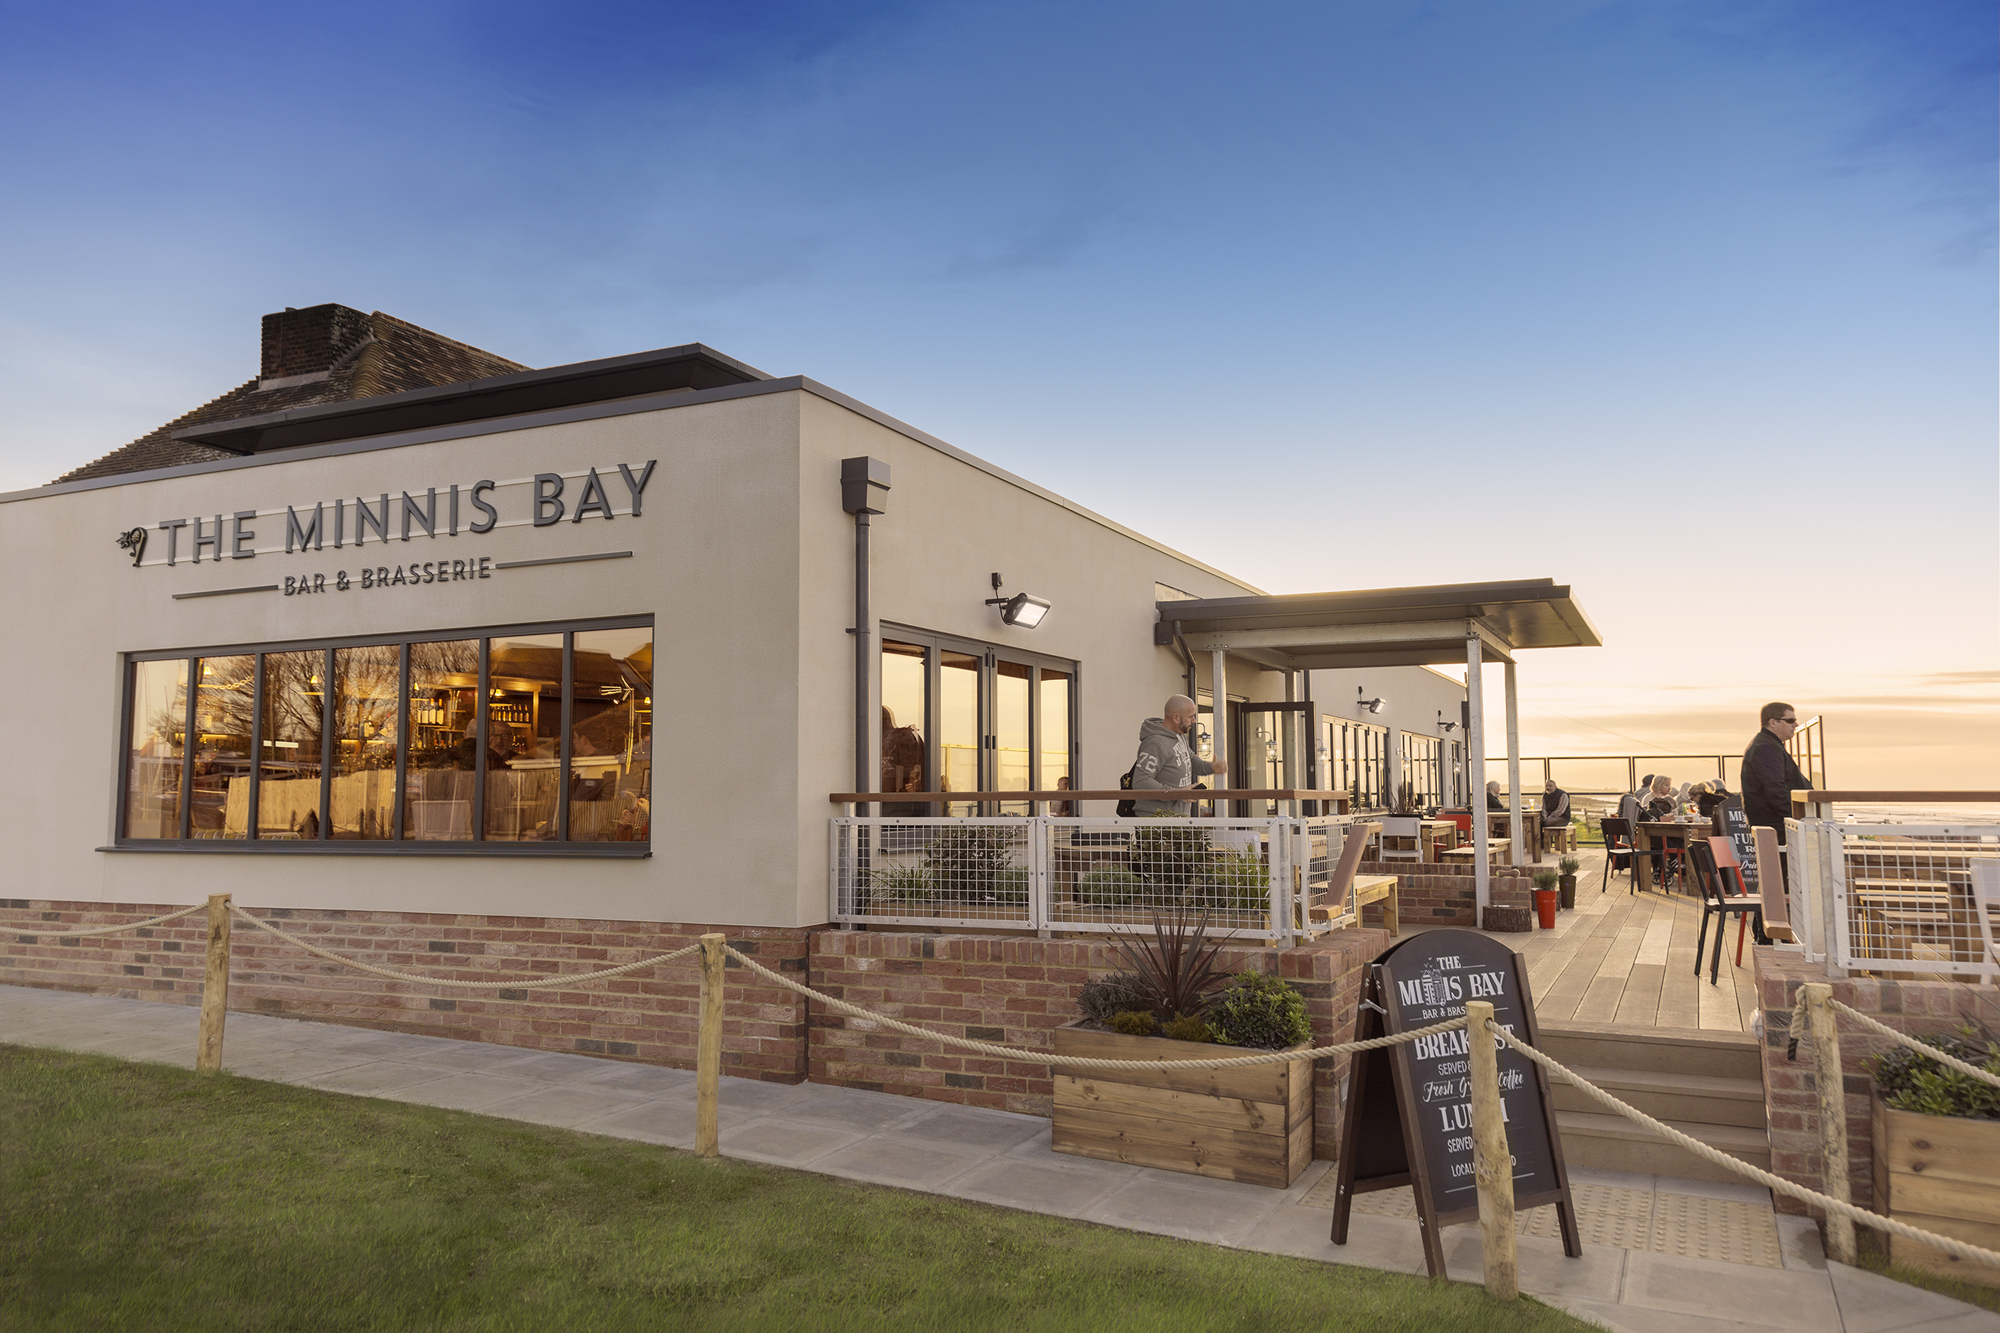 The new-look Minnis Bay Bar and Brasserie